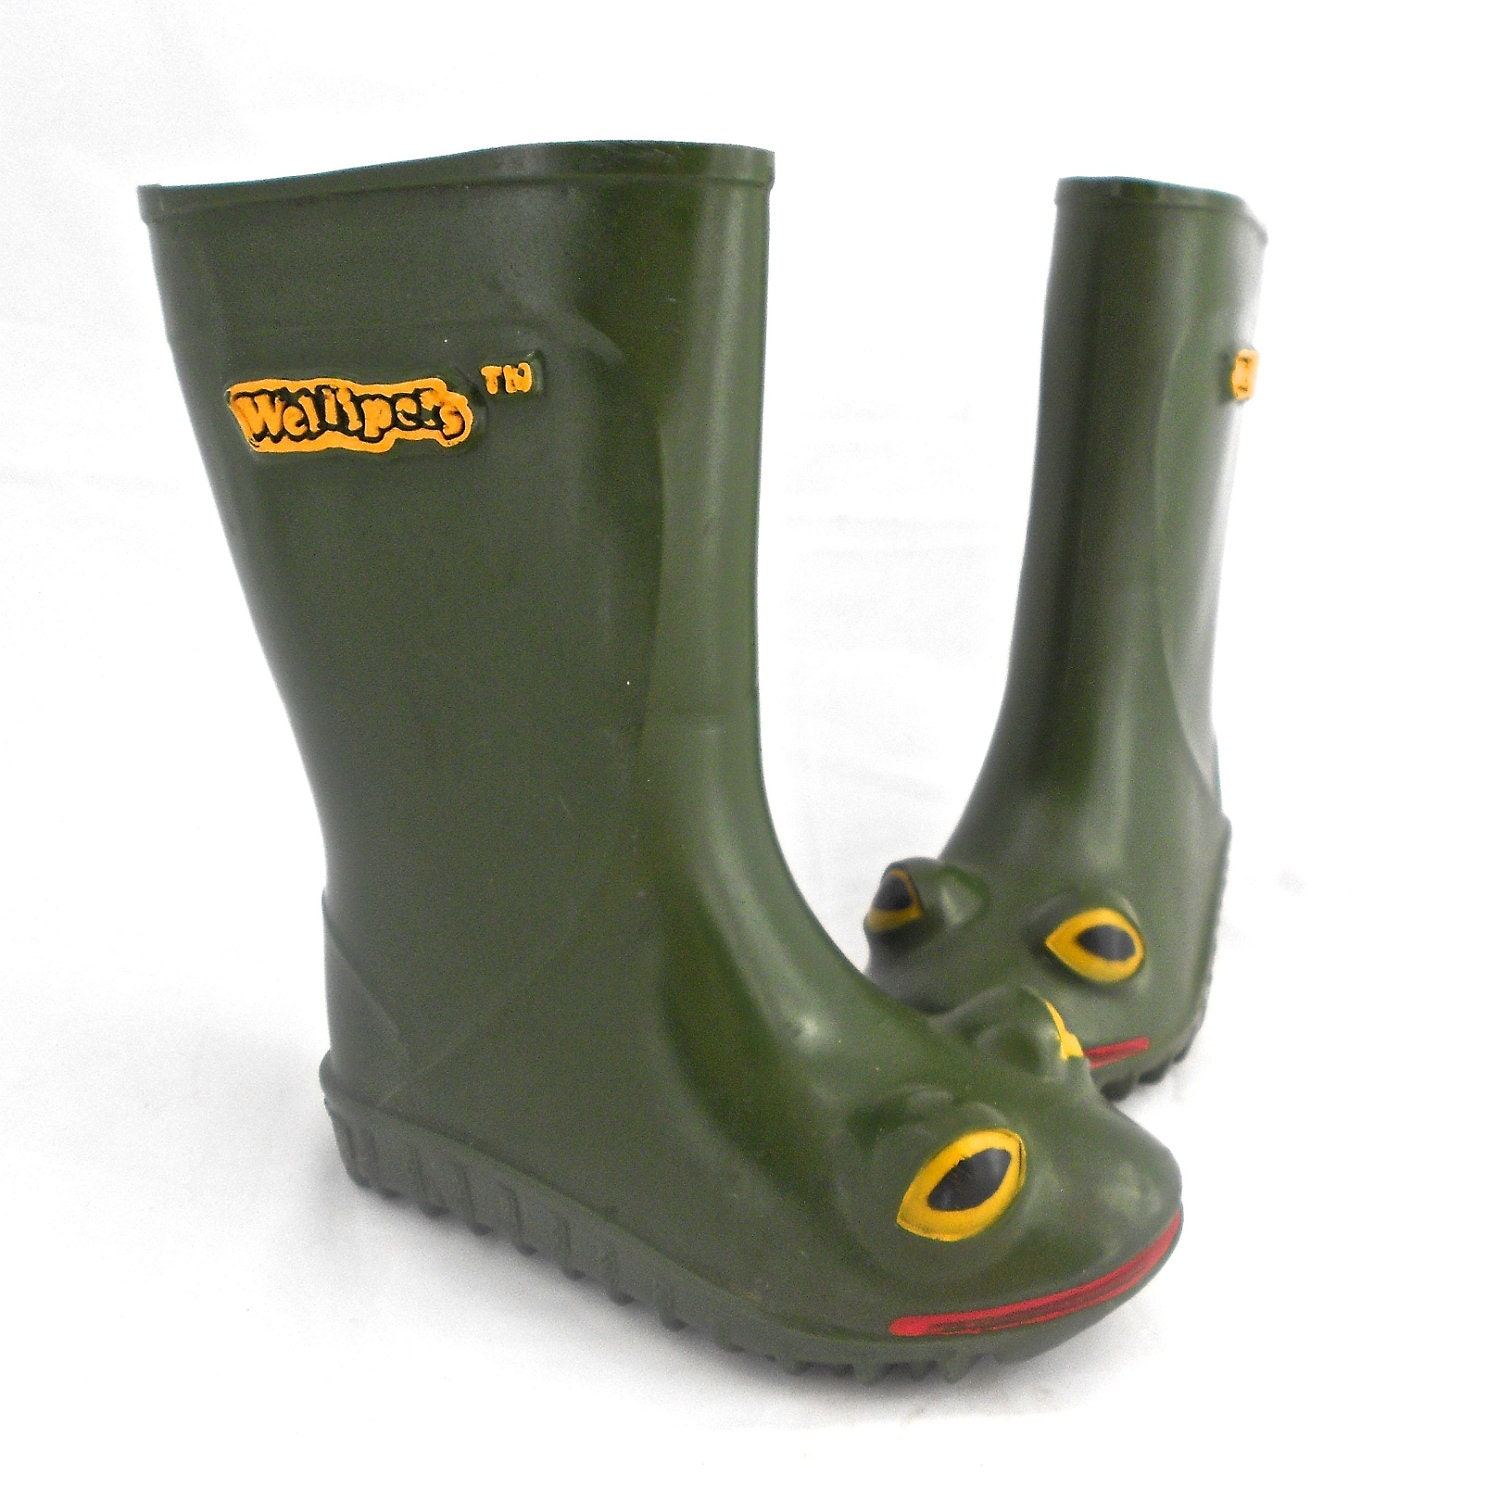 Original Childrens WelliPets Green Frog Rain Boots TREASURY